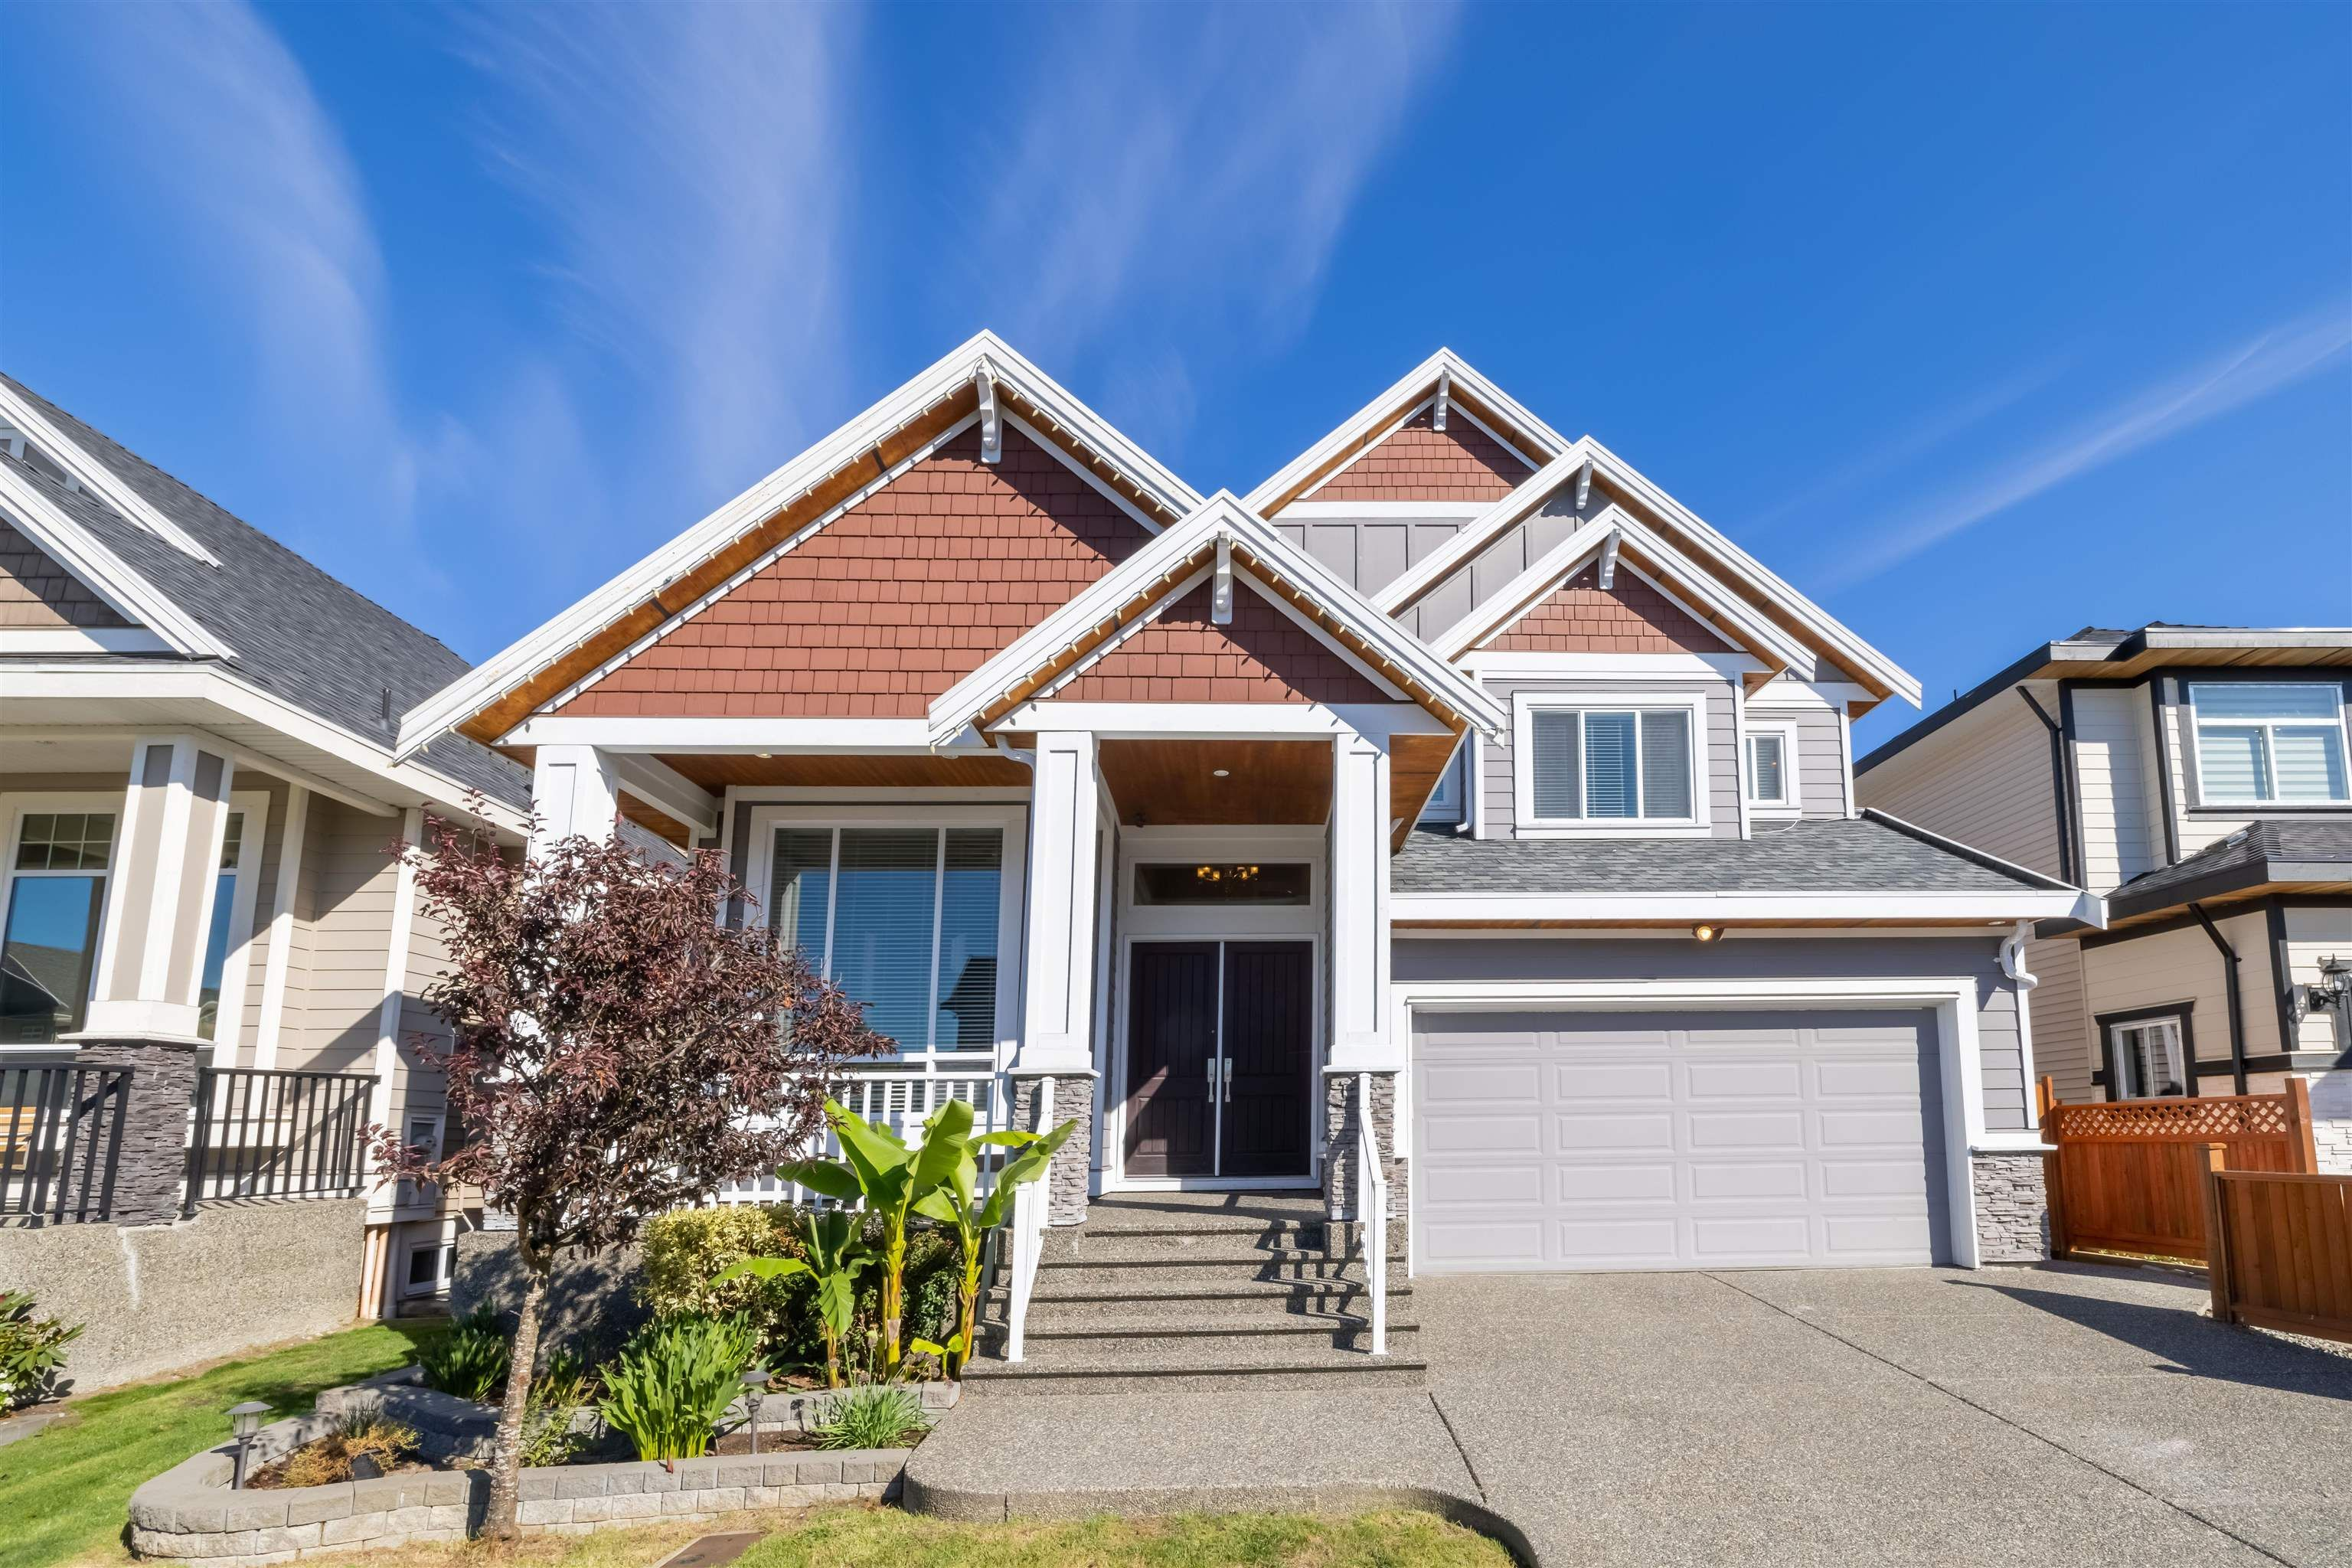 Main Photo: 17355 64A Avenue in Surrey: Cloverdale BC House for sale (Cloverdale)  : MLS®# R2618458